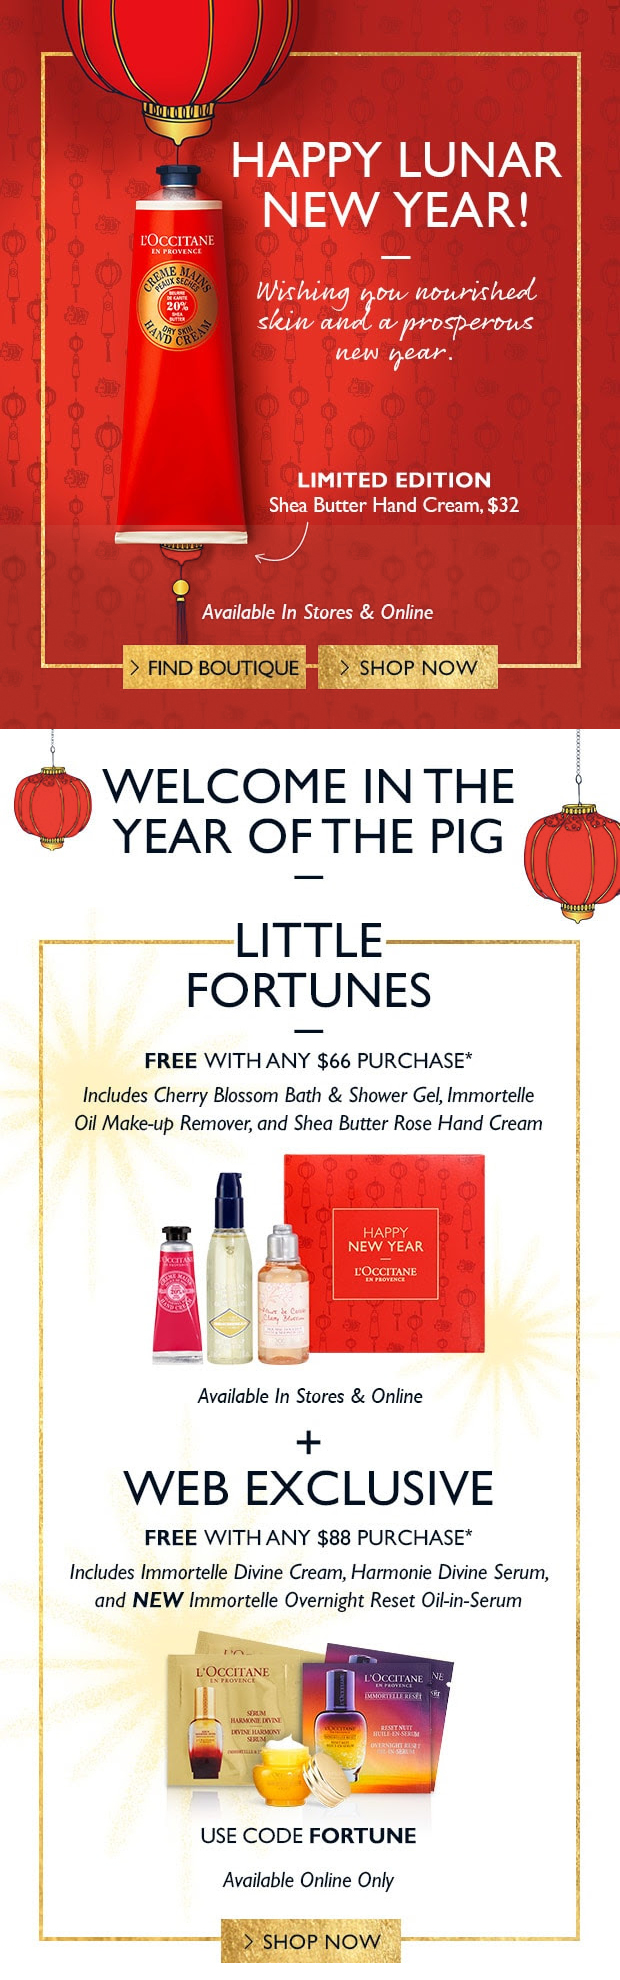 L'Occitane Canada 2019 Canadian Chinese New Year Lunar New Year Lucky Little Fortune Fortunes Promo Code Coupon Code GWP Free Gift Sets - Glossense